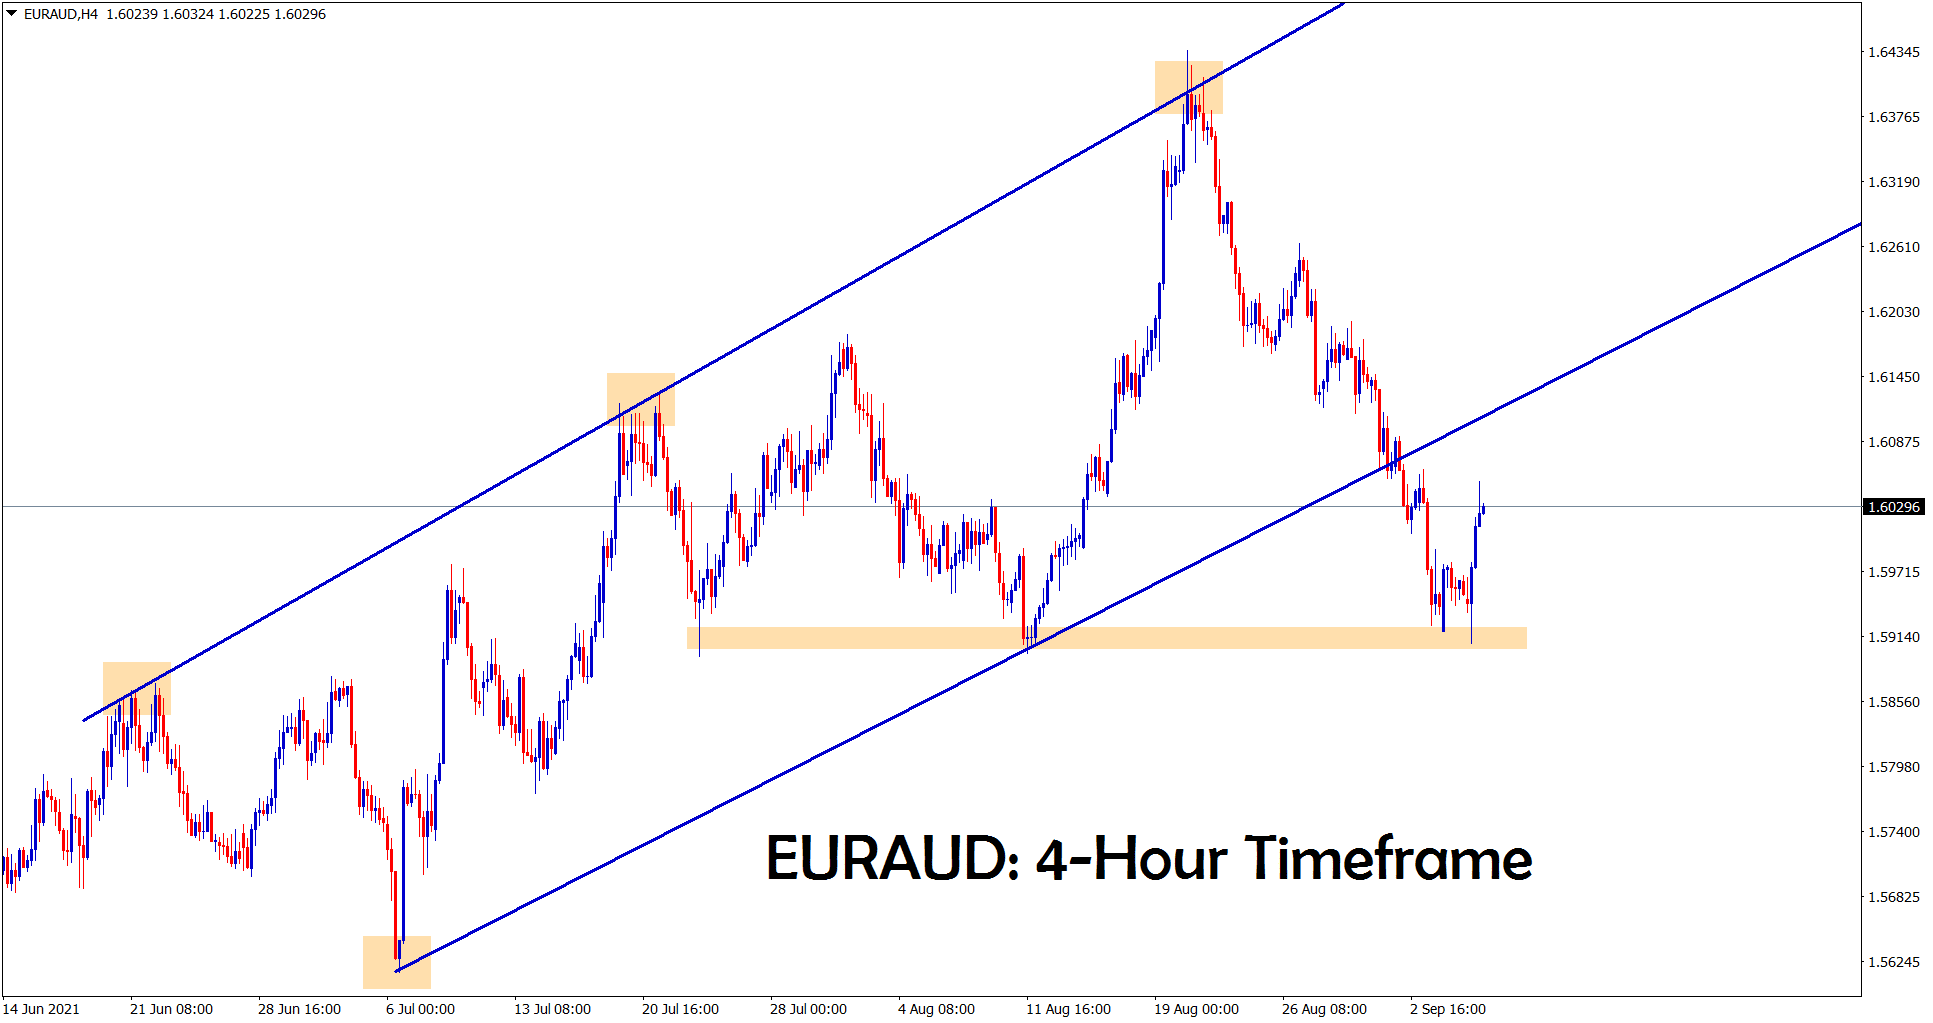 EURAUD is moving up after hitting the horizontal support area